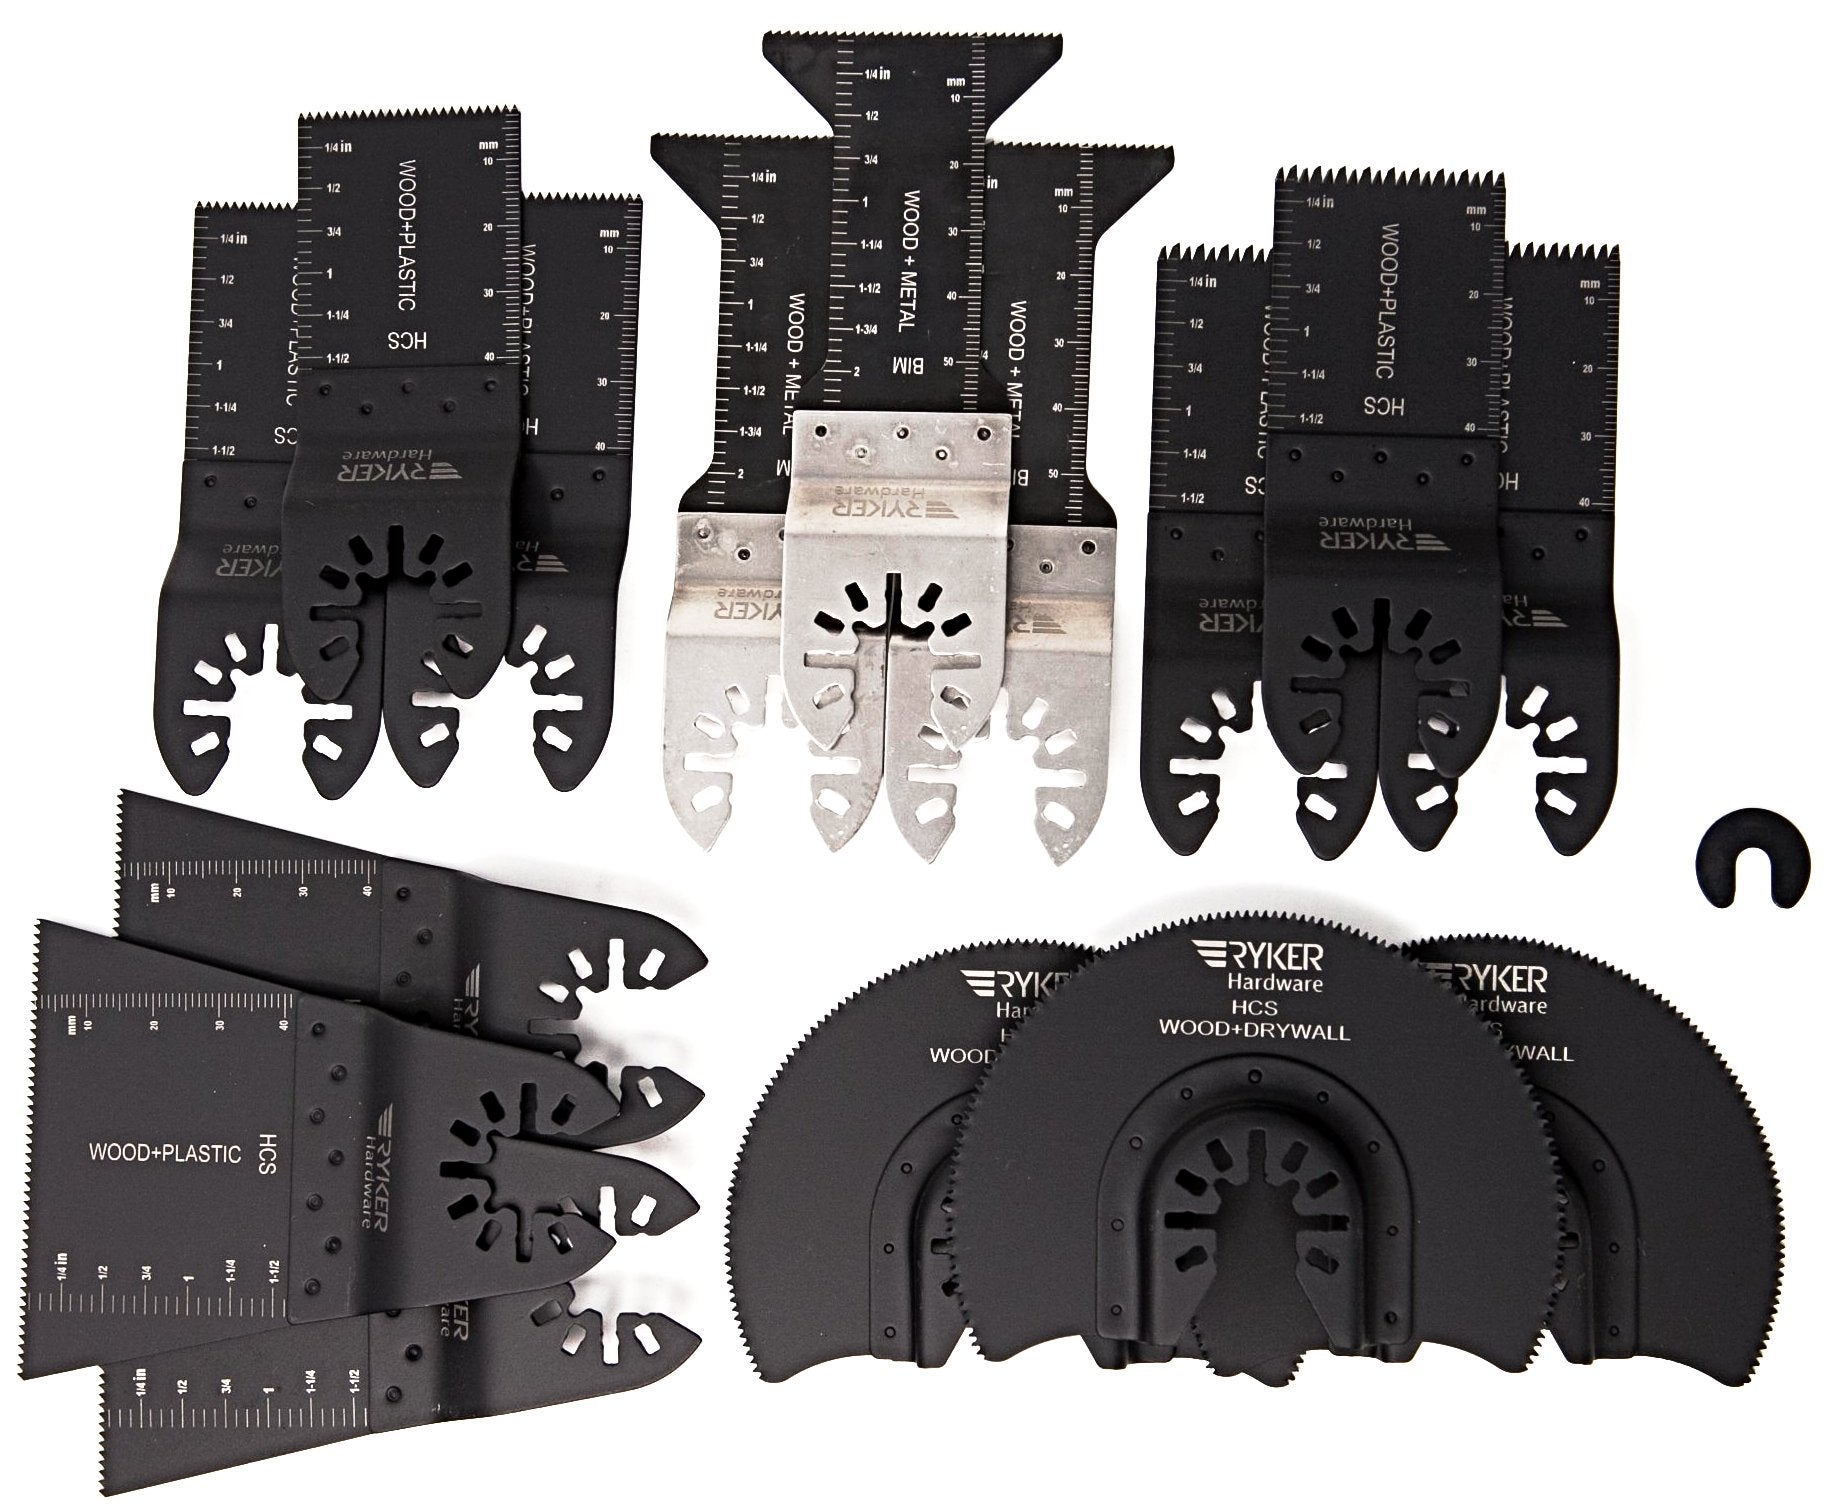 caseypowell - 15 Piece Variety Pack of Quick Release Oscillating Saw Blades For Wood and Metal - Oscillating Saw Blade - Ryker Hardware